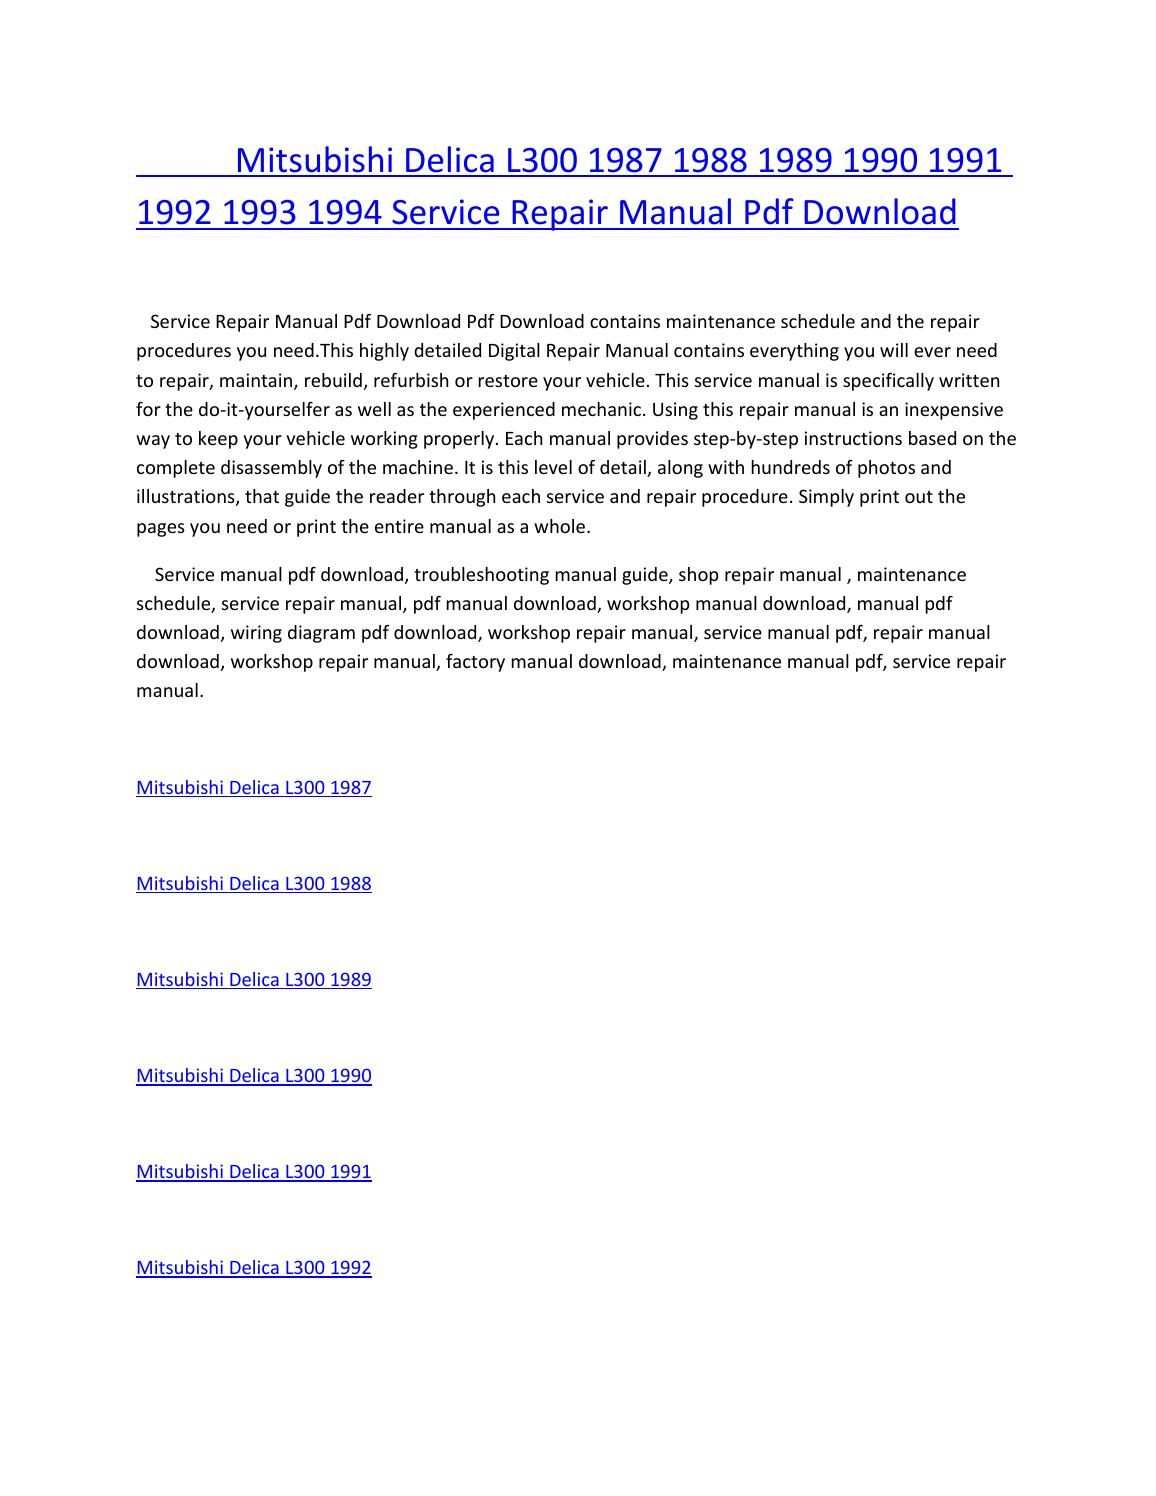 hight resolution of mitsubishi delica l300 1987 1988 1989 1990 1991 1992 1993 1994 service repair manual pdf download by amurgului issuu